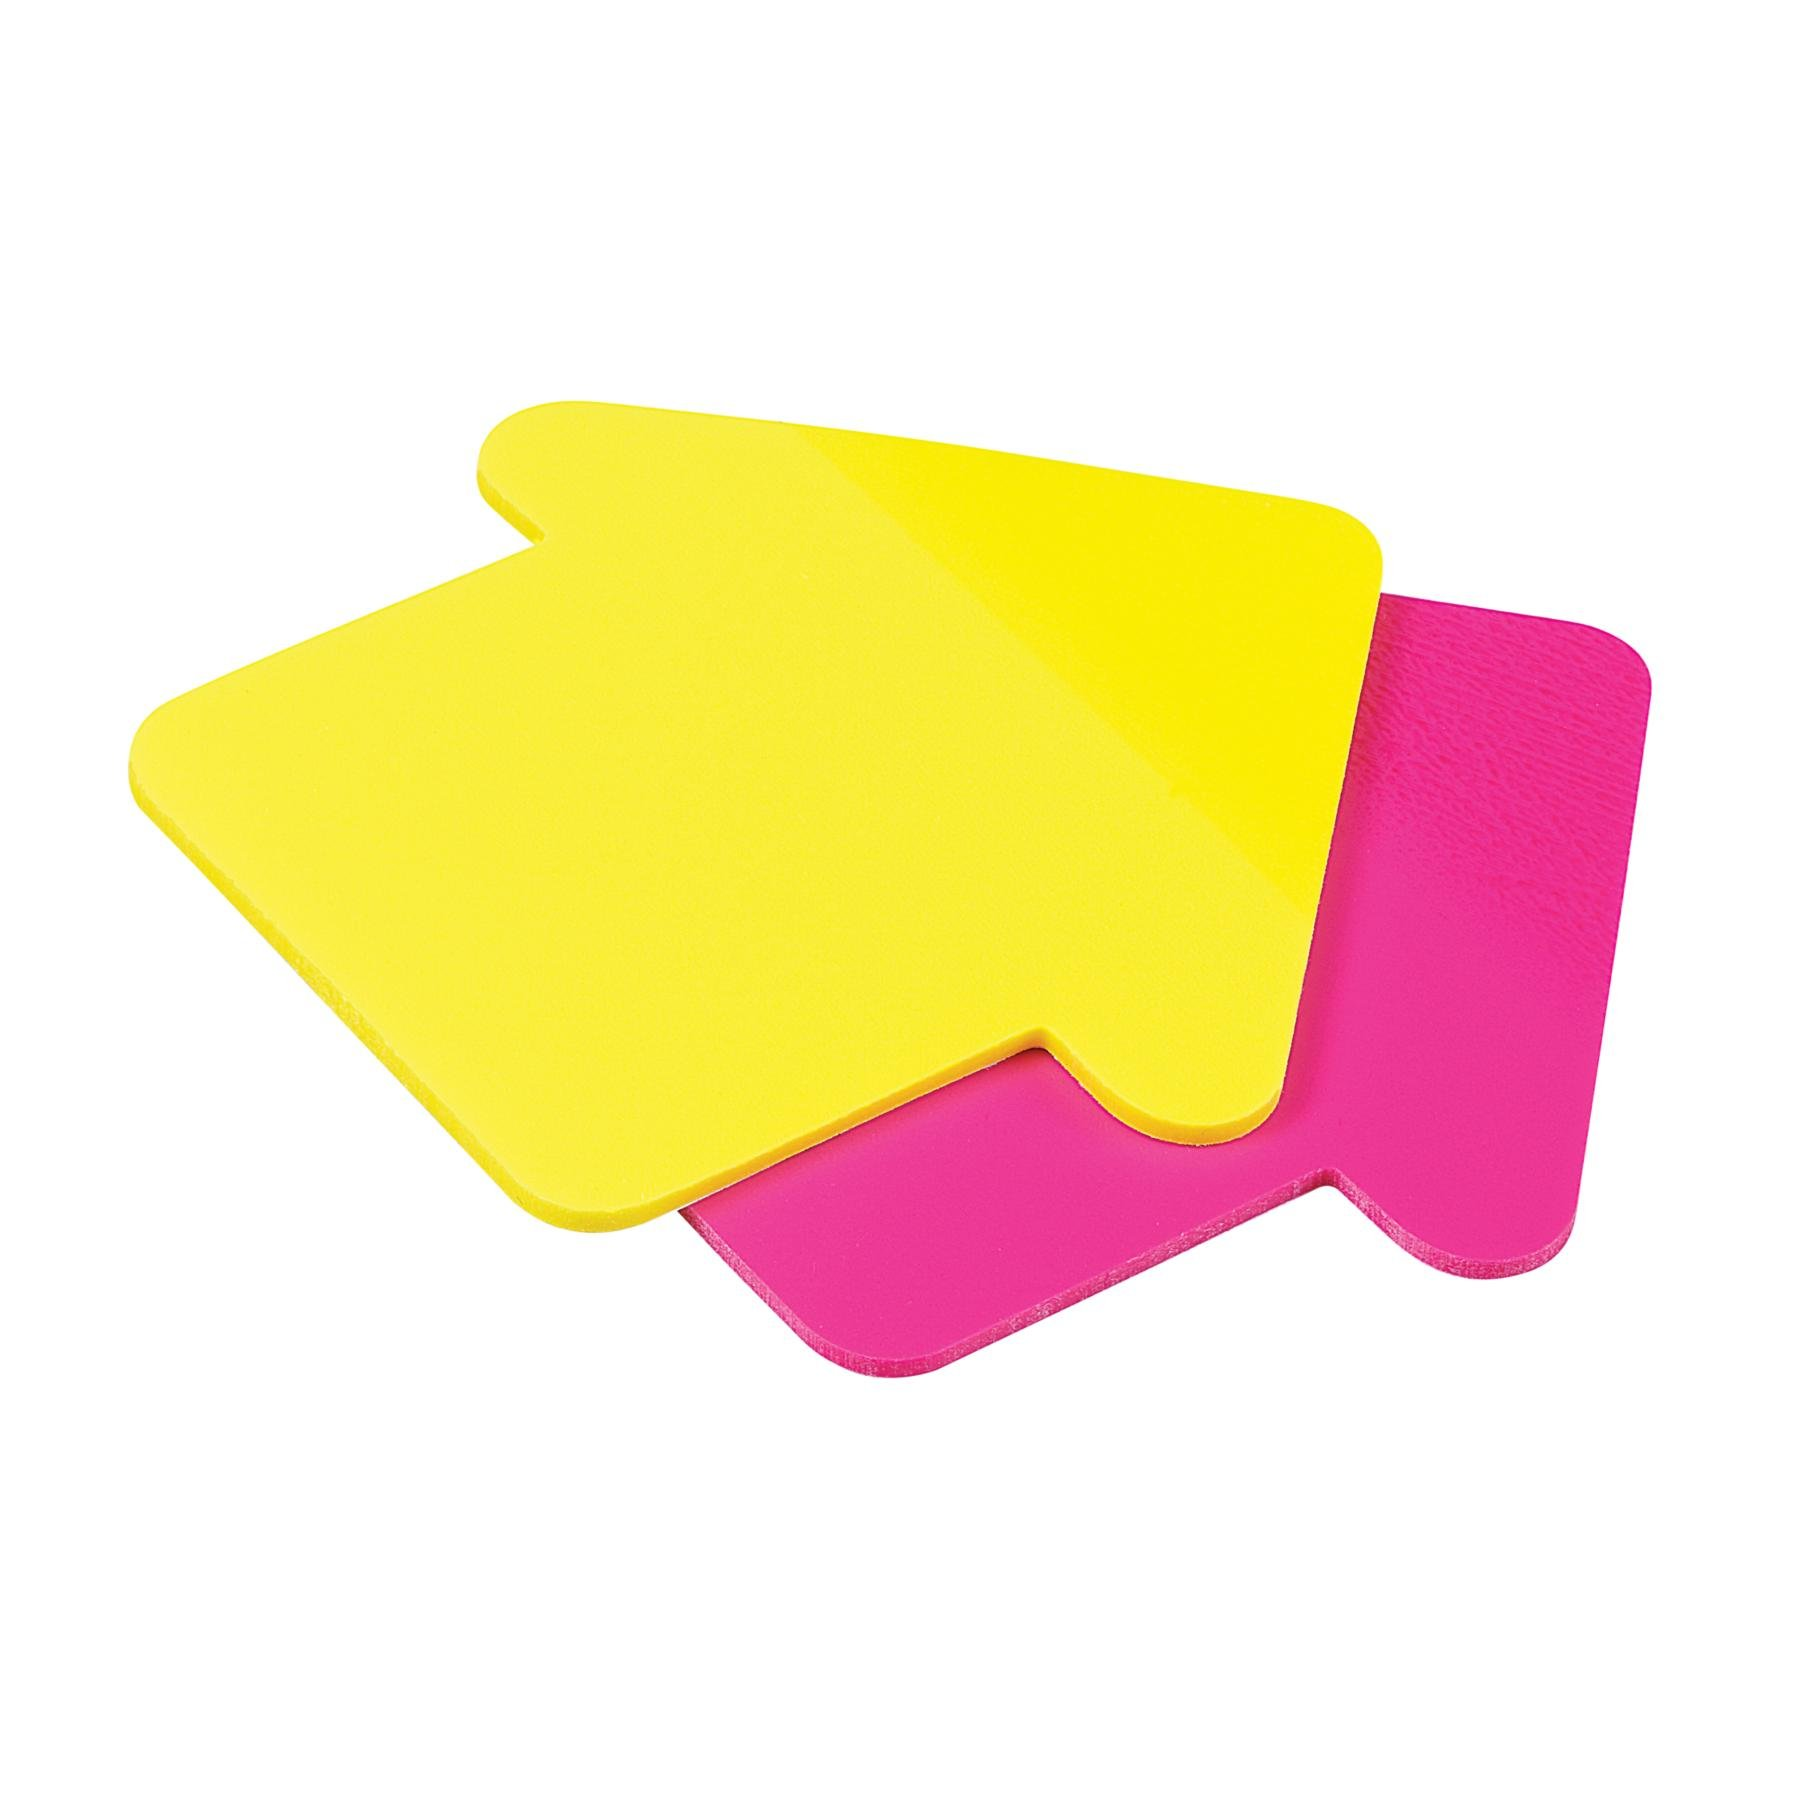 Sticky Note Picture - ClipArt Best